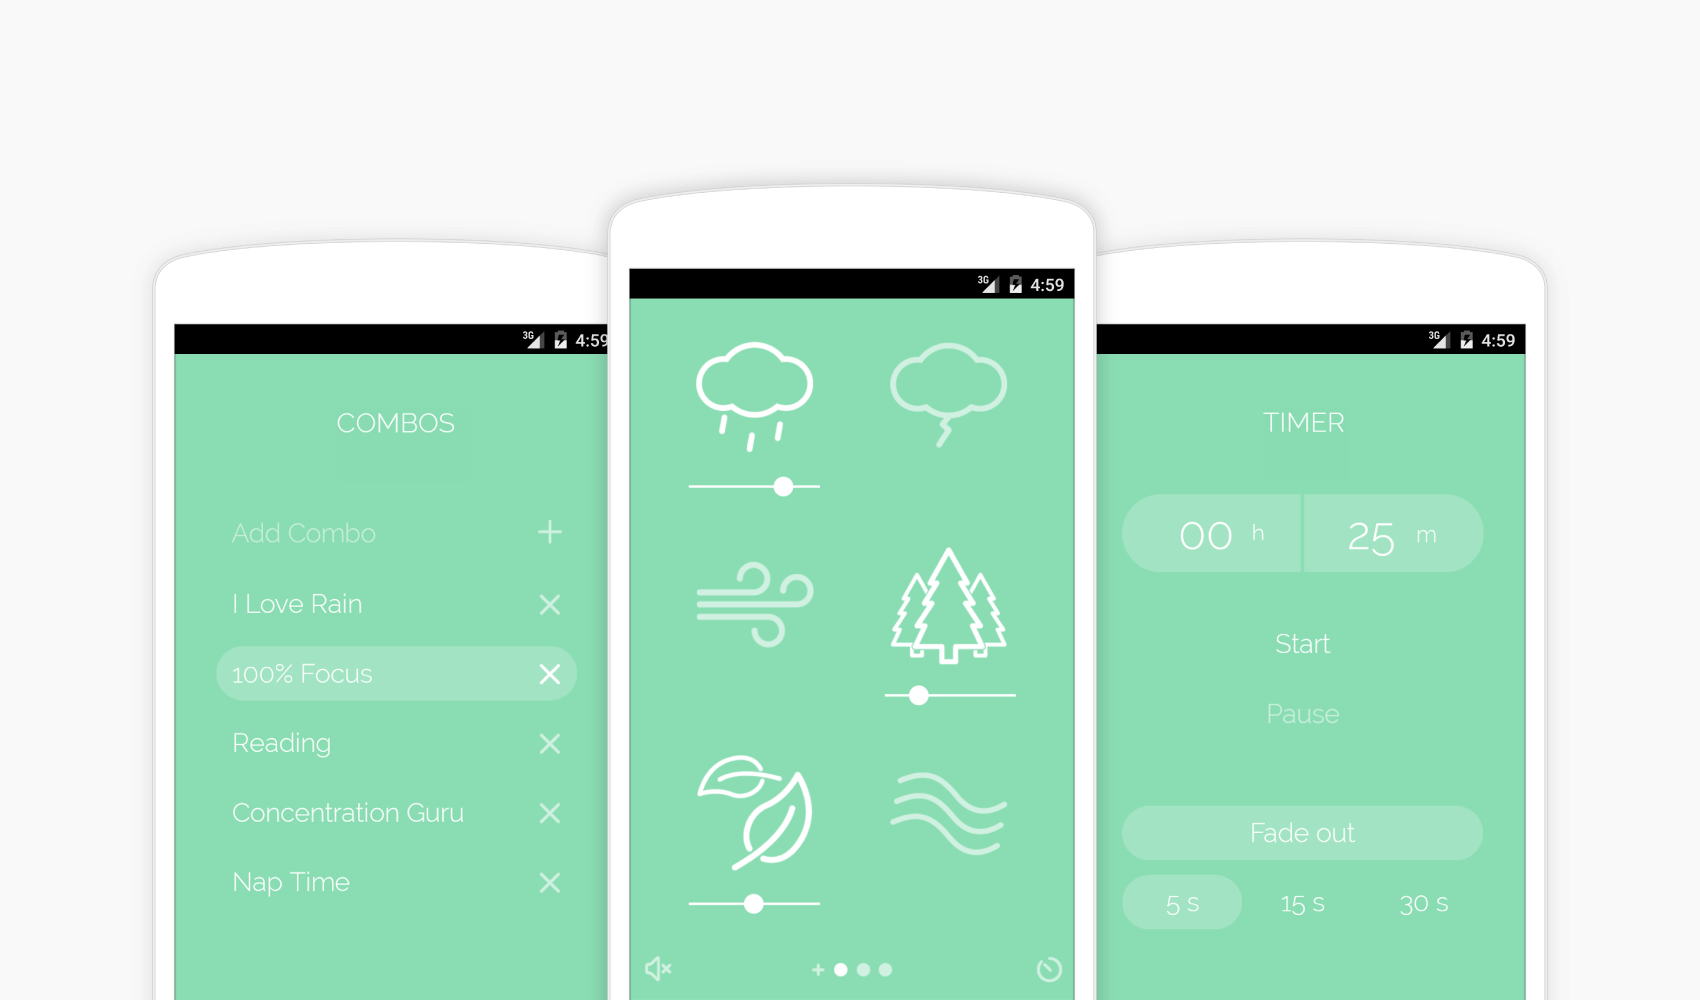 Application de musique Noisli pour augmenter sa concentration